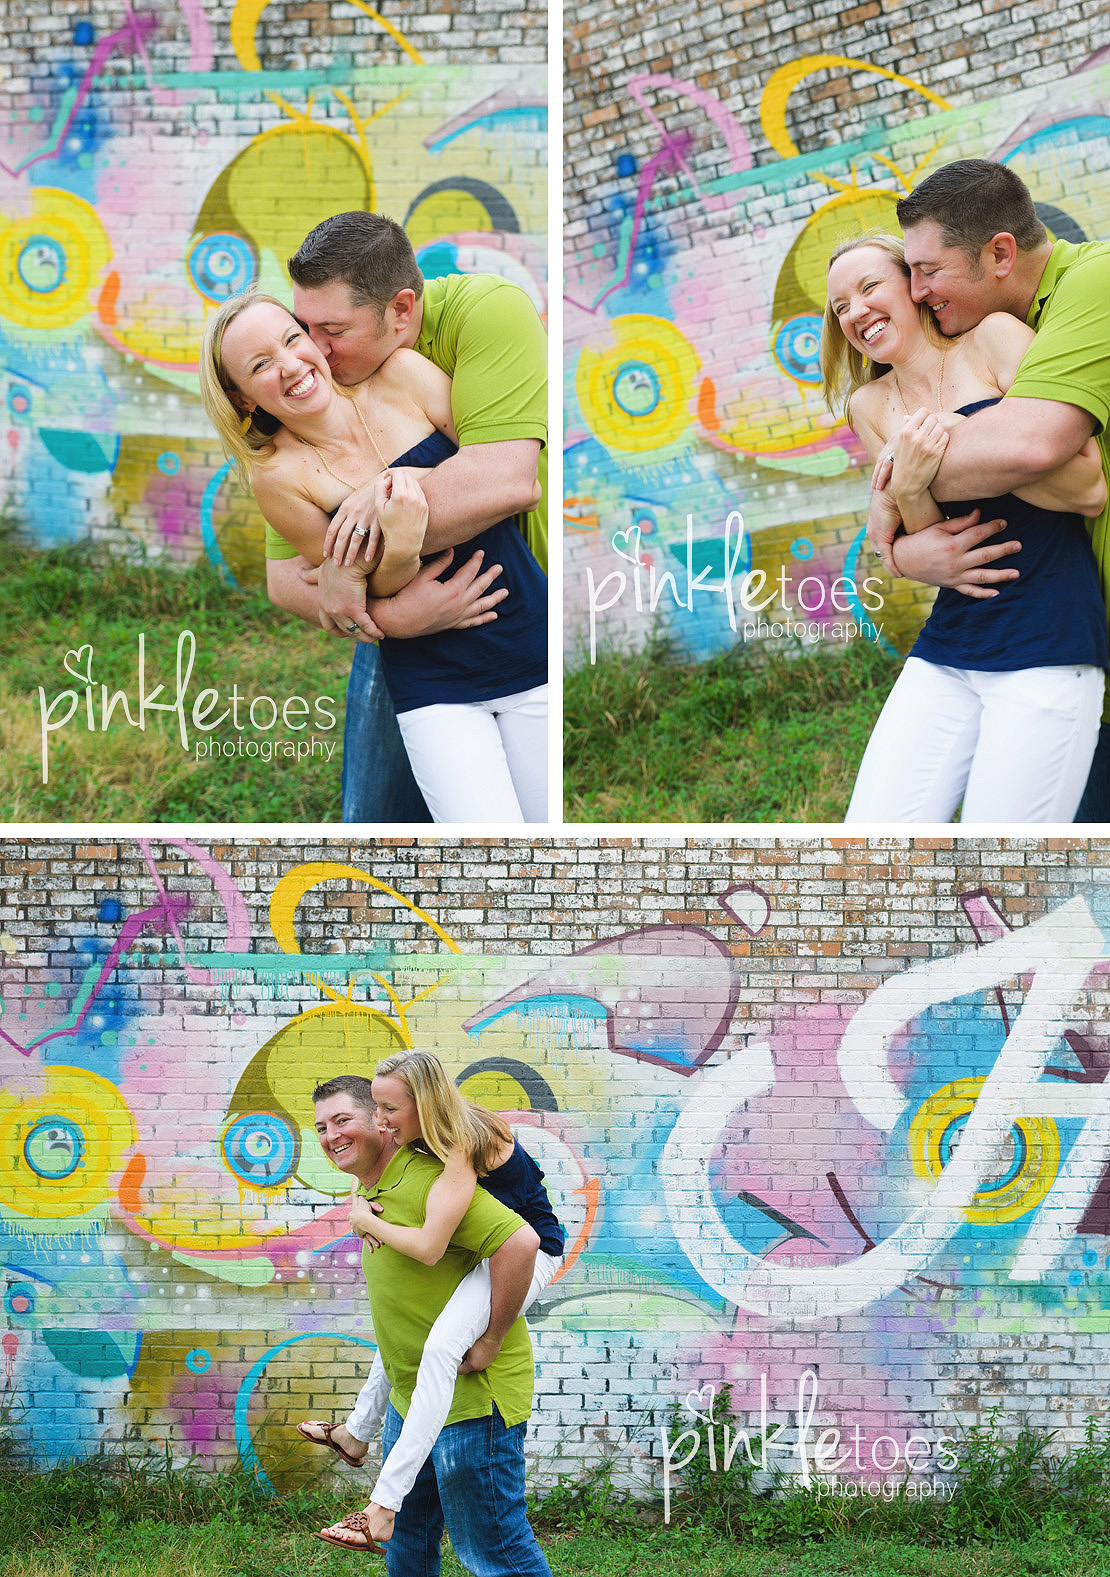 austin-colorful-bright-family-kids-hello-urban-photography-14